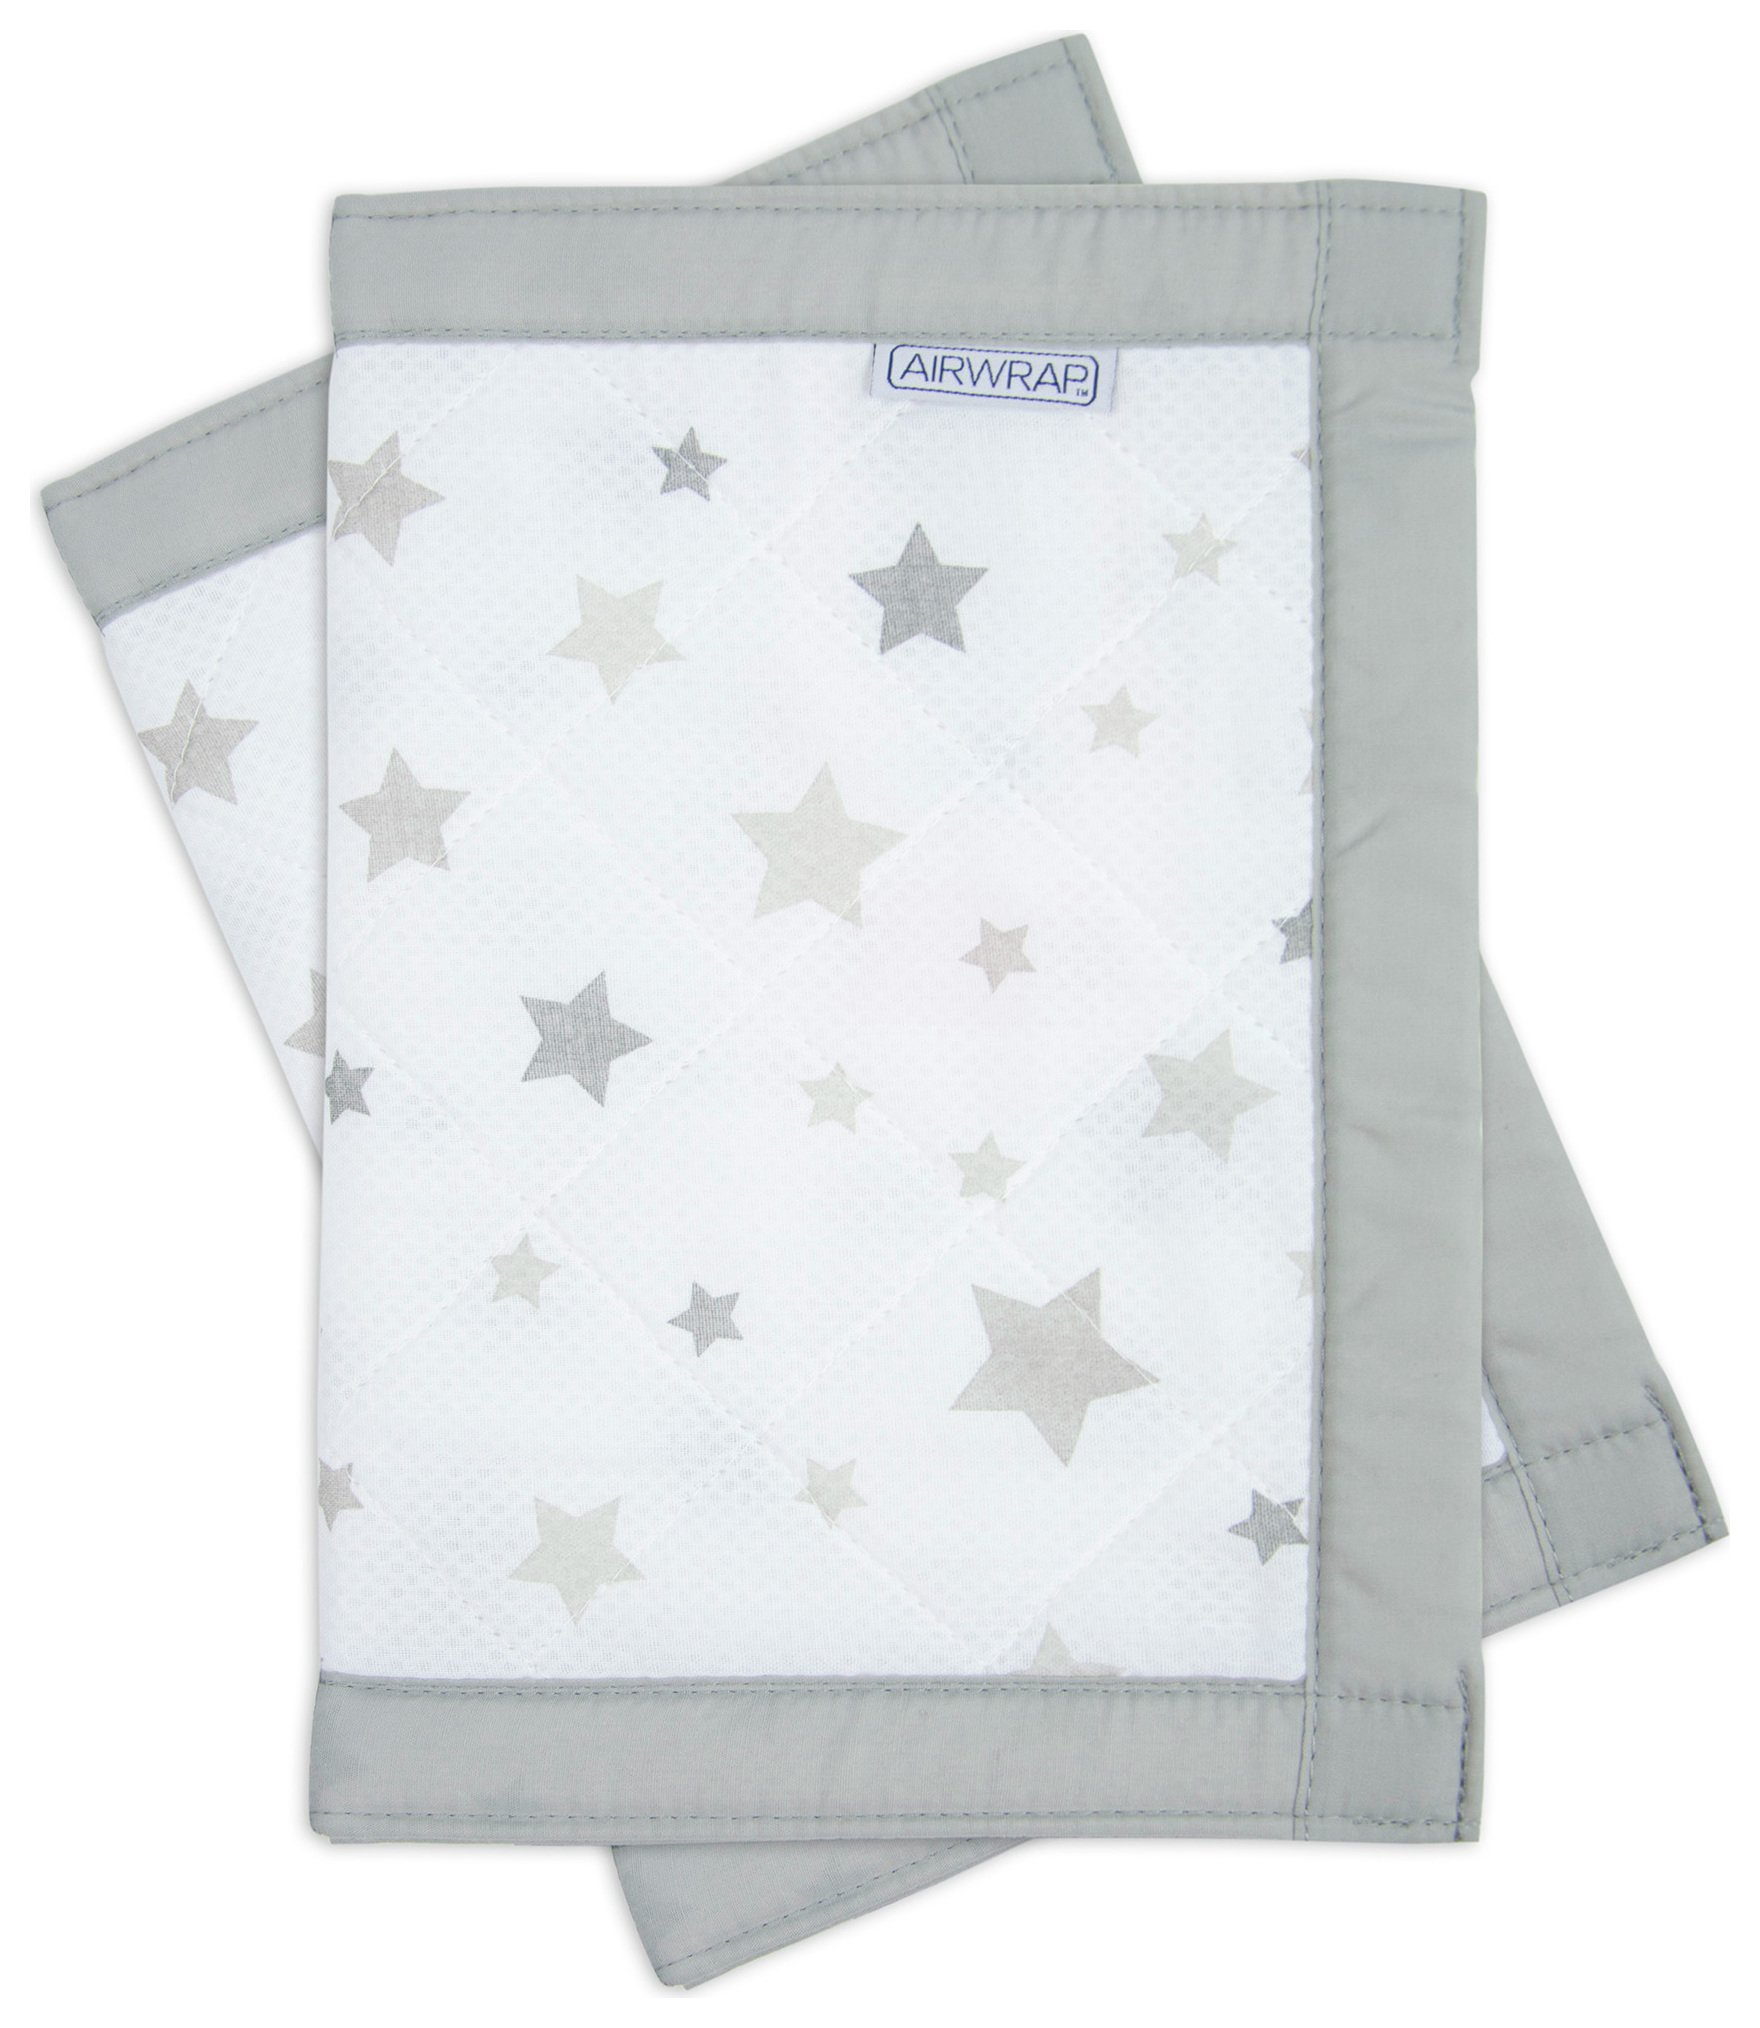 Image of Airwrap - Printed 2 Sided - Cot Bumper - Silver Stars